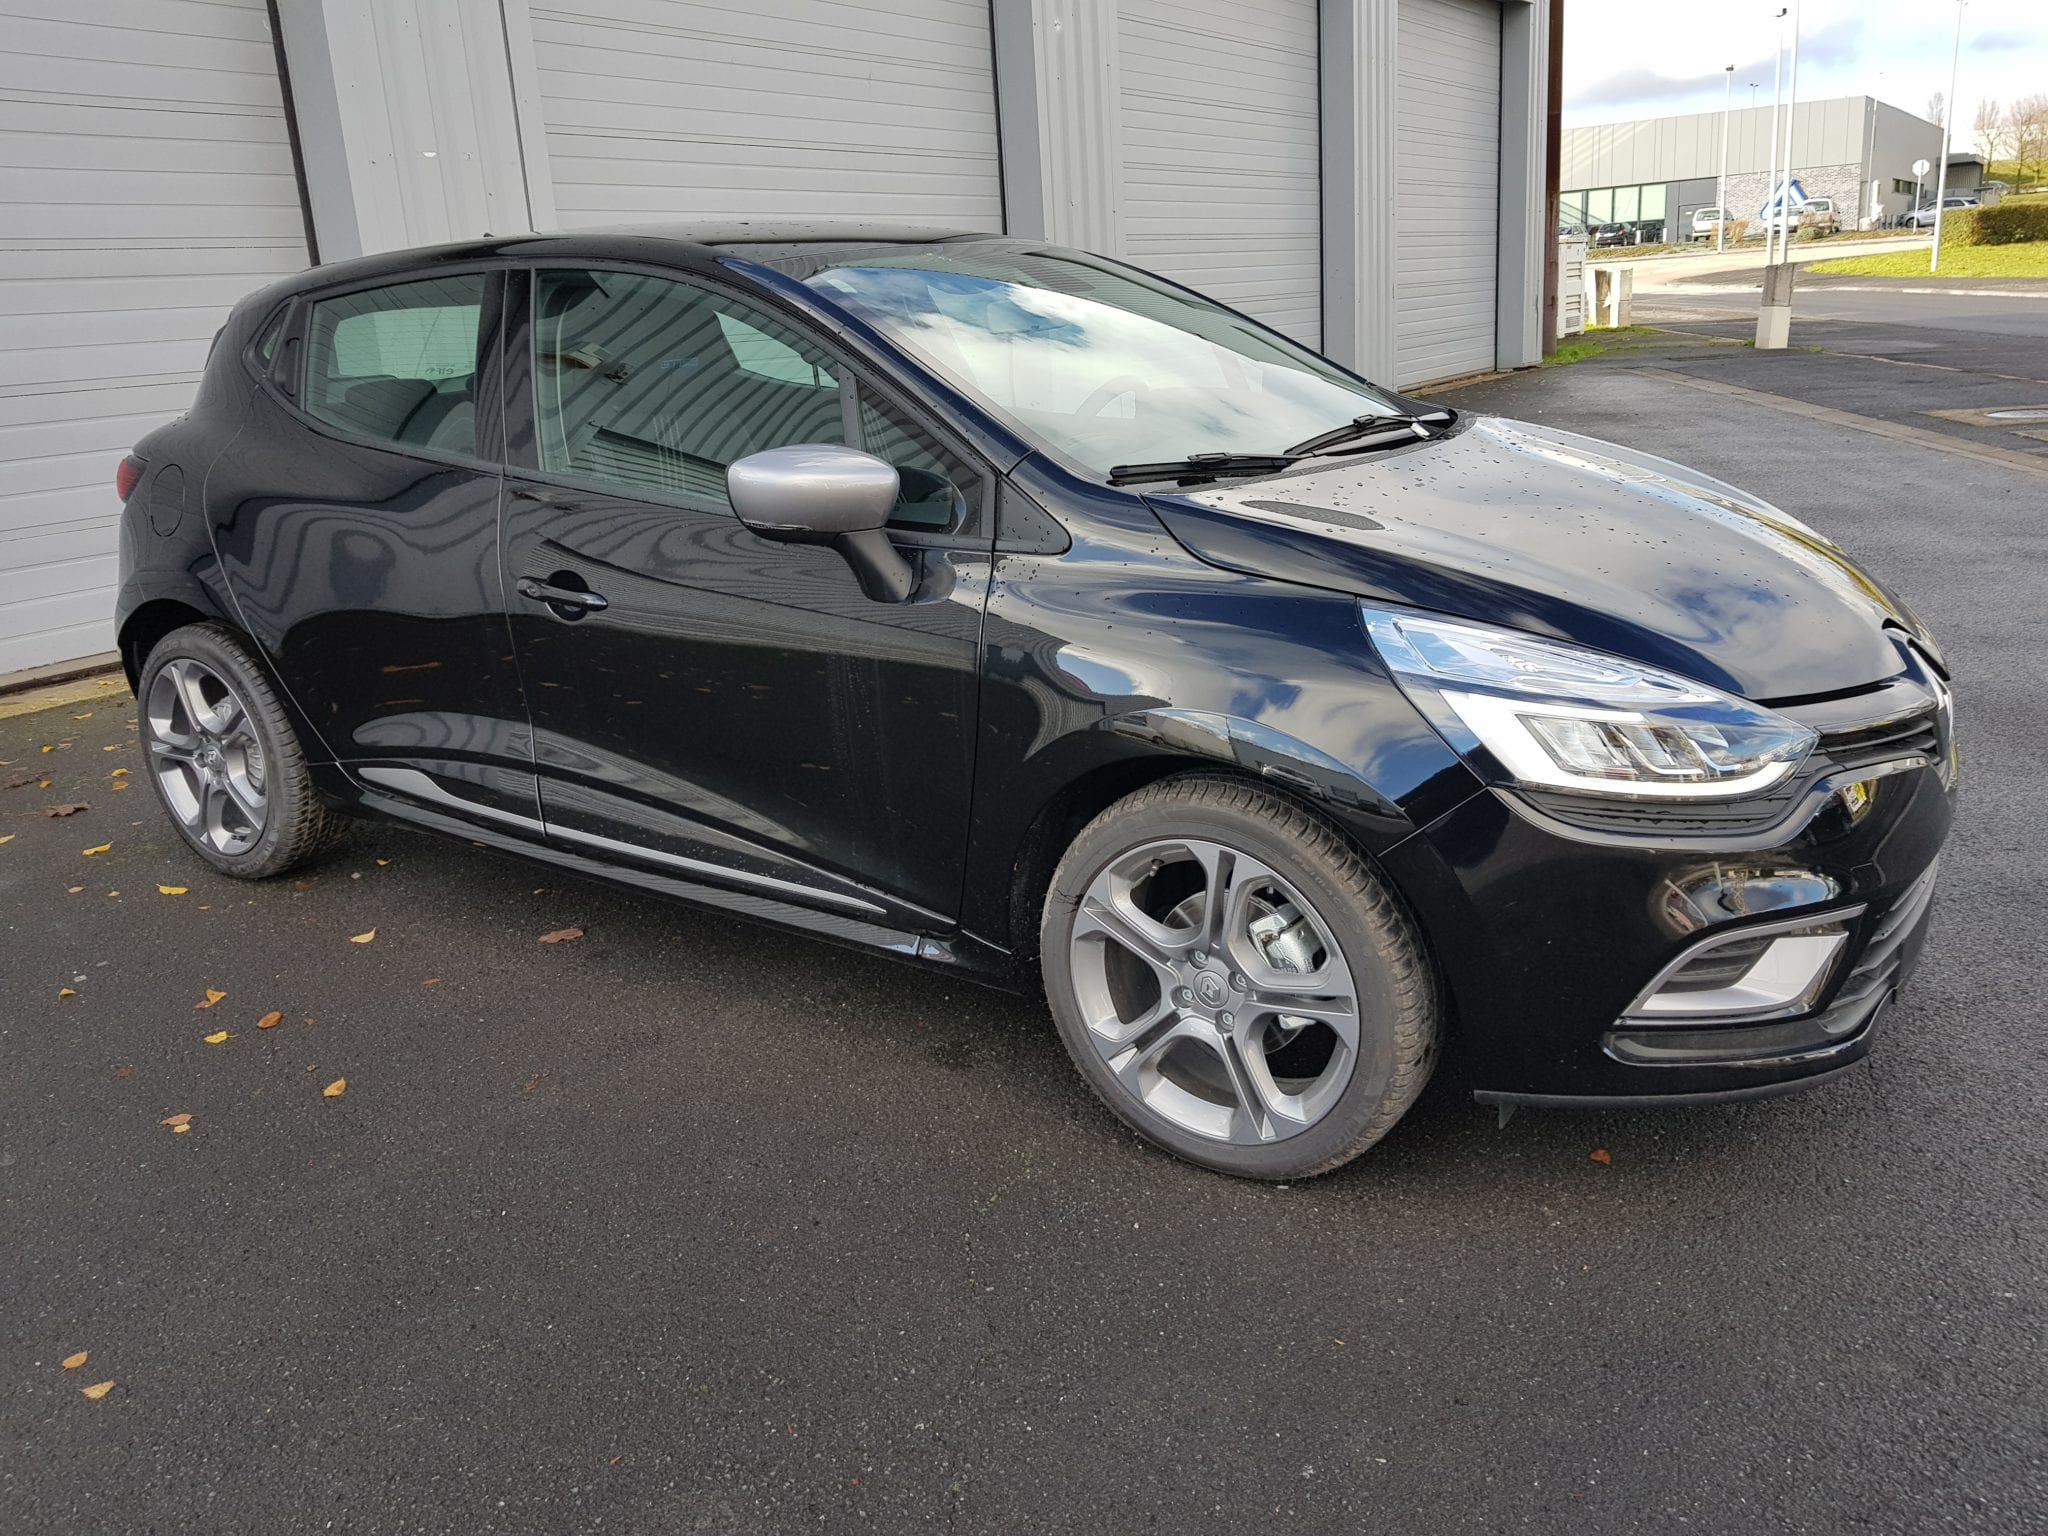 RENAULT NV CLIO 4 TCE 90 ENERGY GT-LINE - Image 3